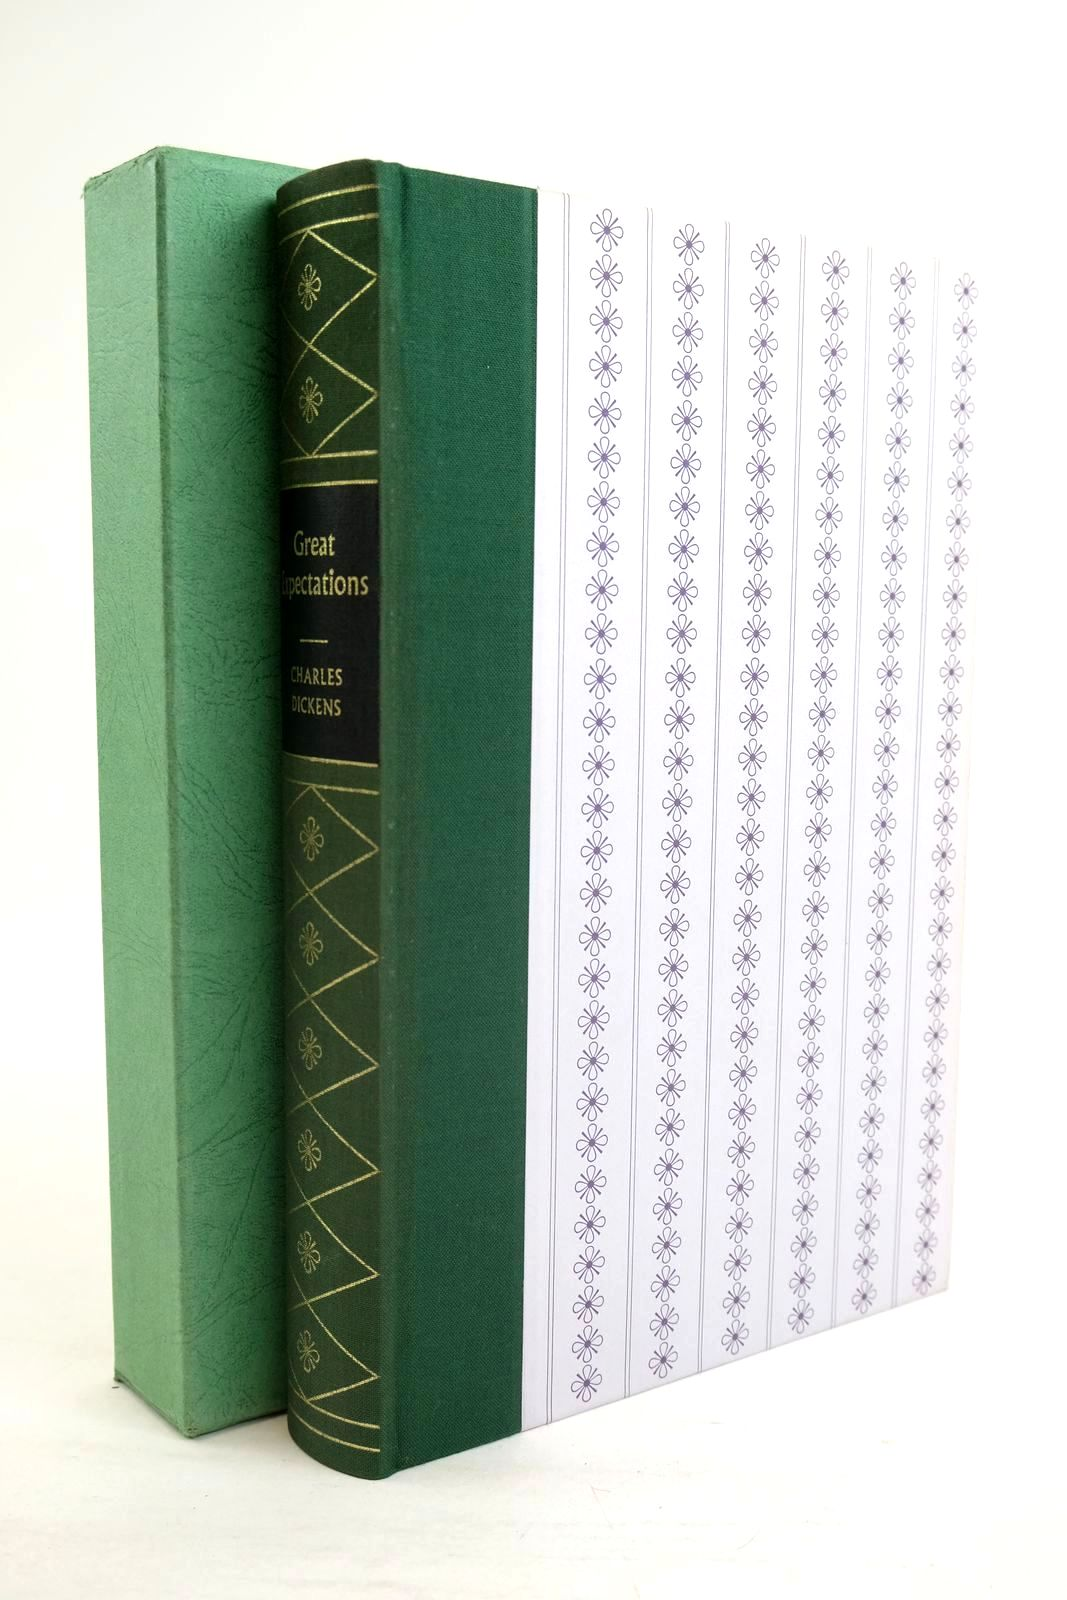 Photo of GREAT EXPECTATIONS written by Dickens, Charles illustrated by Keeping, Charles published by Folio Society (STOCK CODE: 1320027)  for sale by Stella & Rose's Books